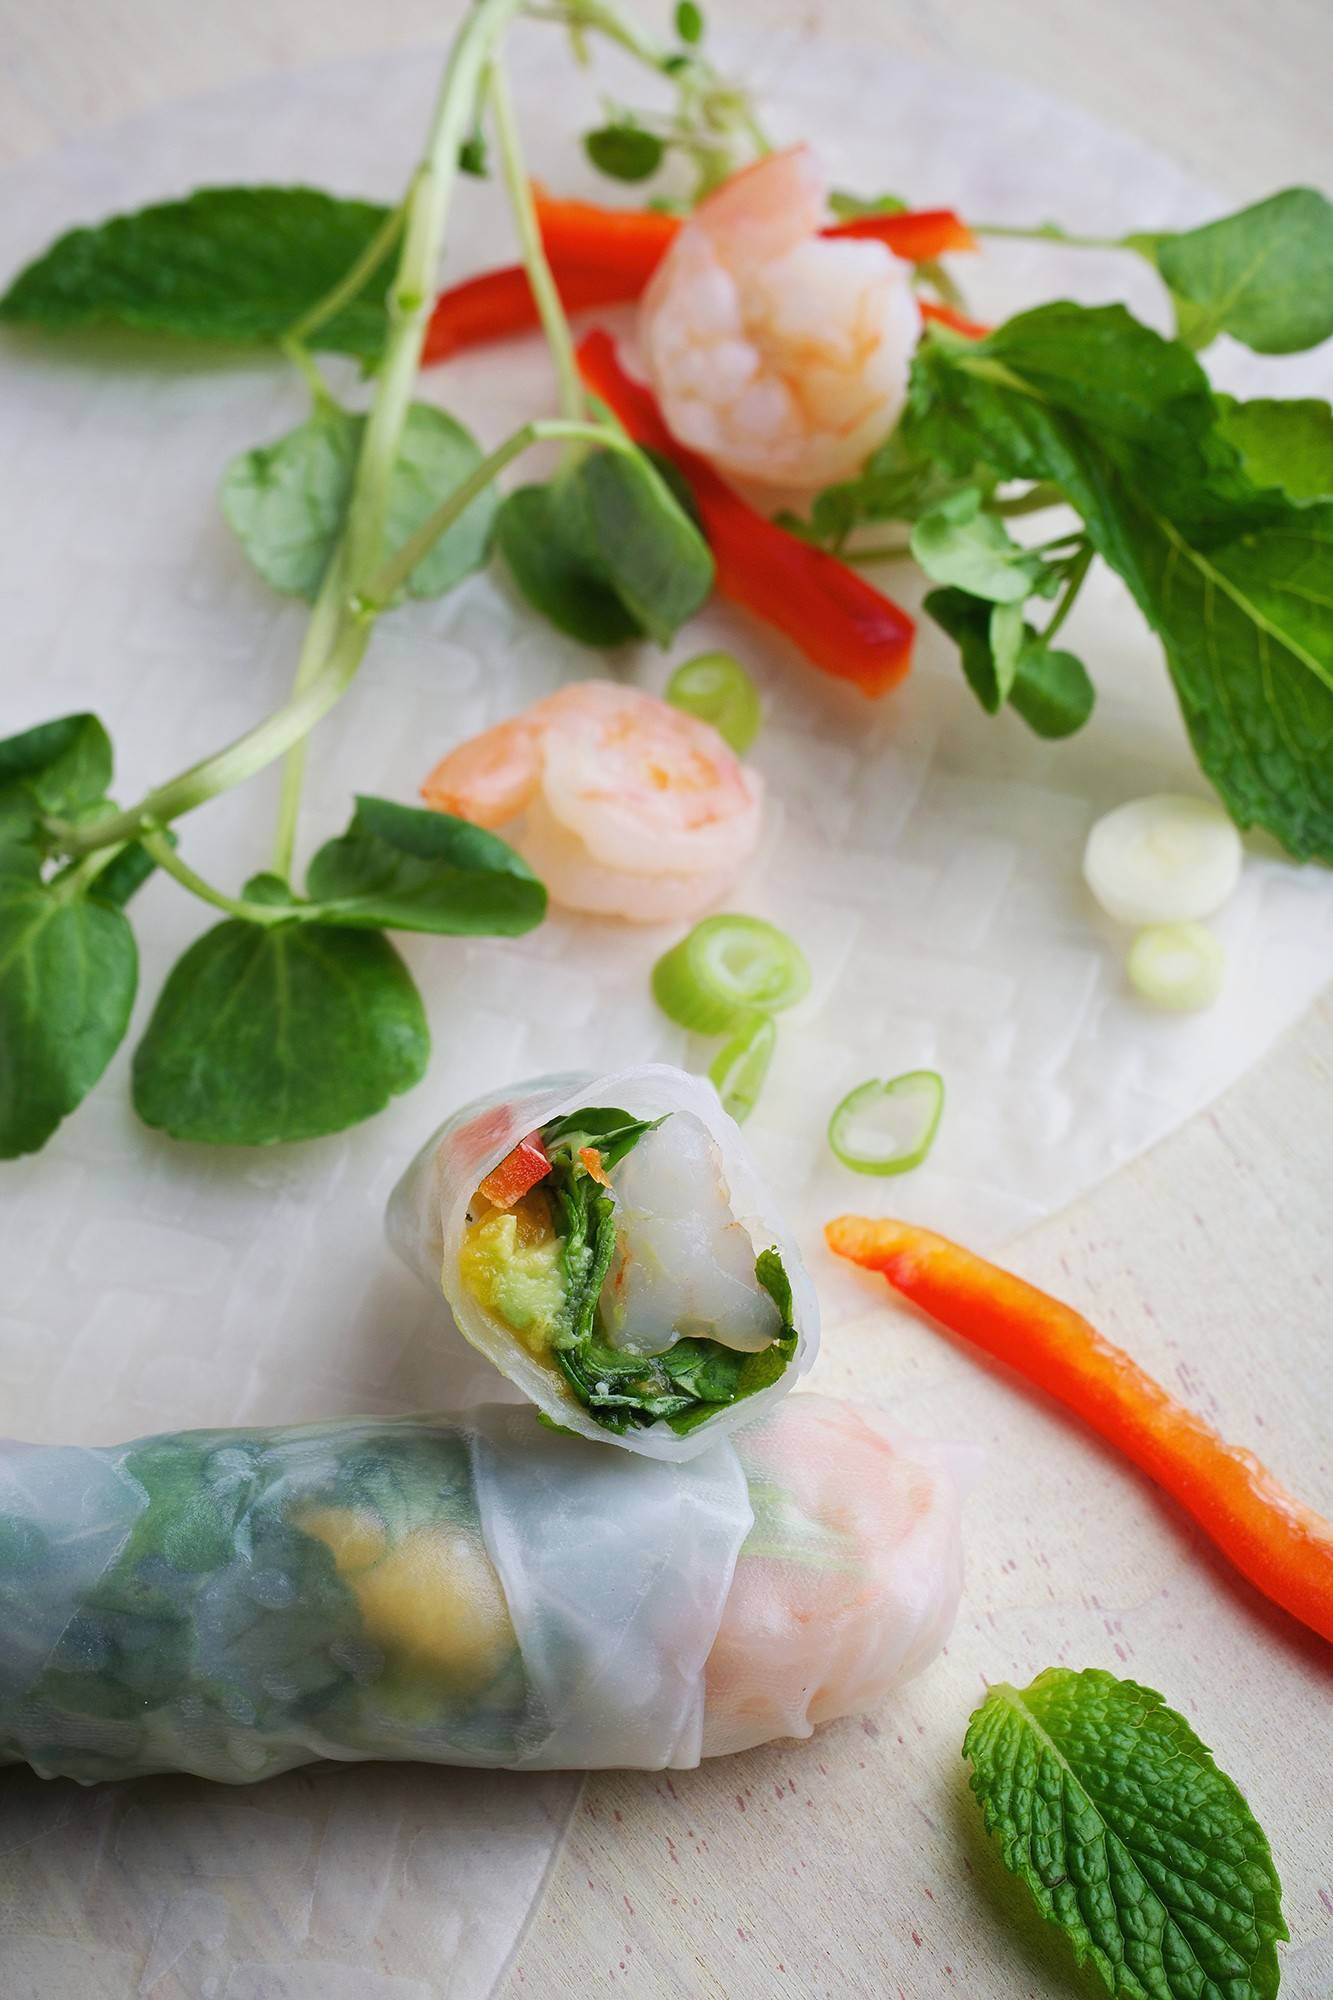 At this time of year, summer rolls are a great way to use powerhouse foods like watercress without falling into a salad slump.